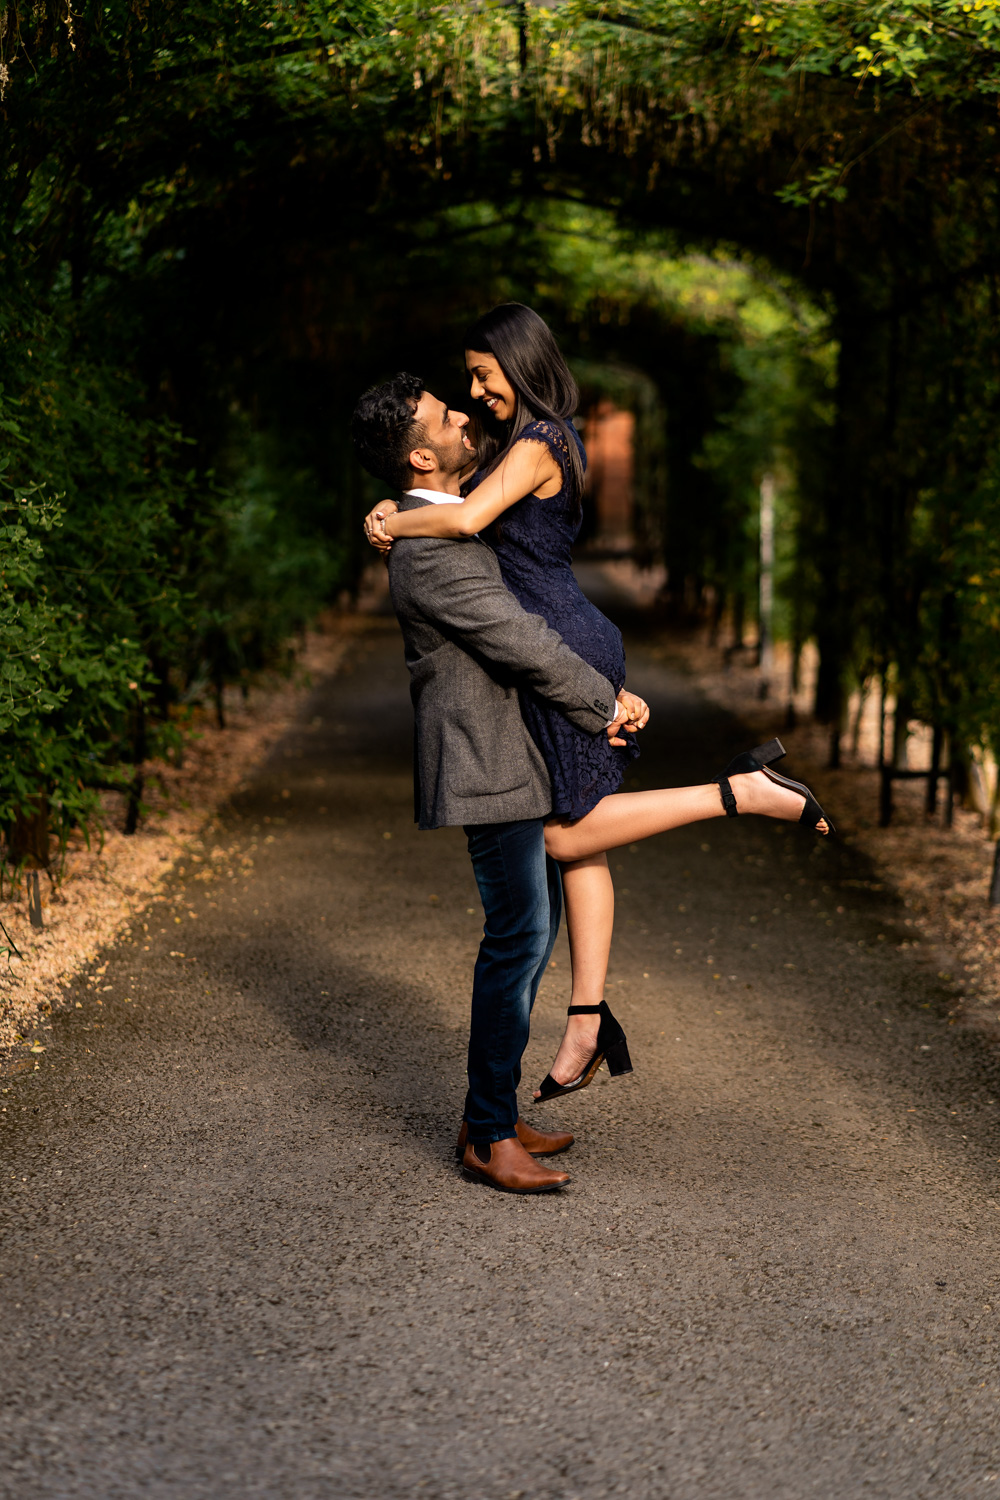 Lovers in intimate moment captured at Hapton Court Palace | Pre Wedding Shoot